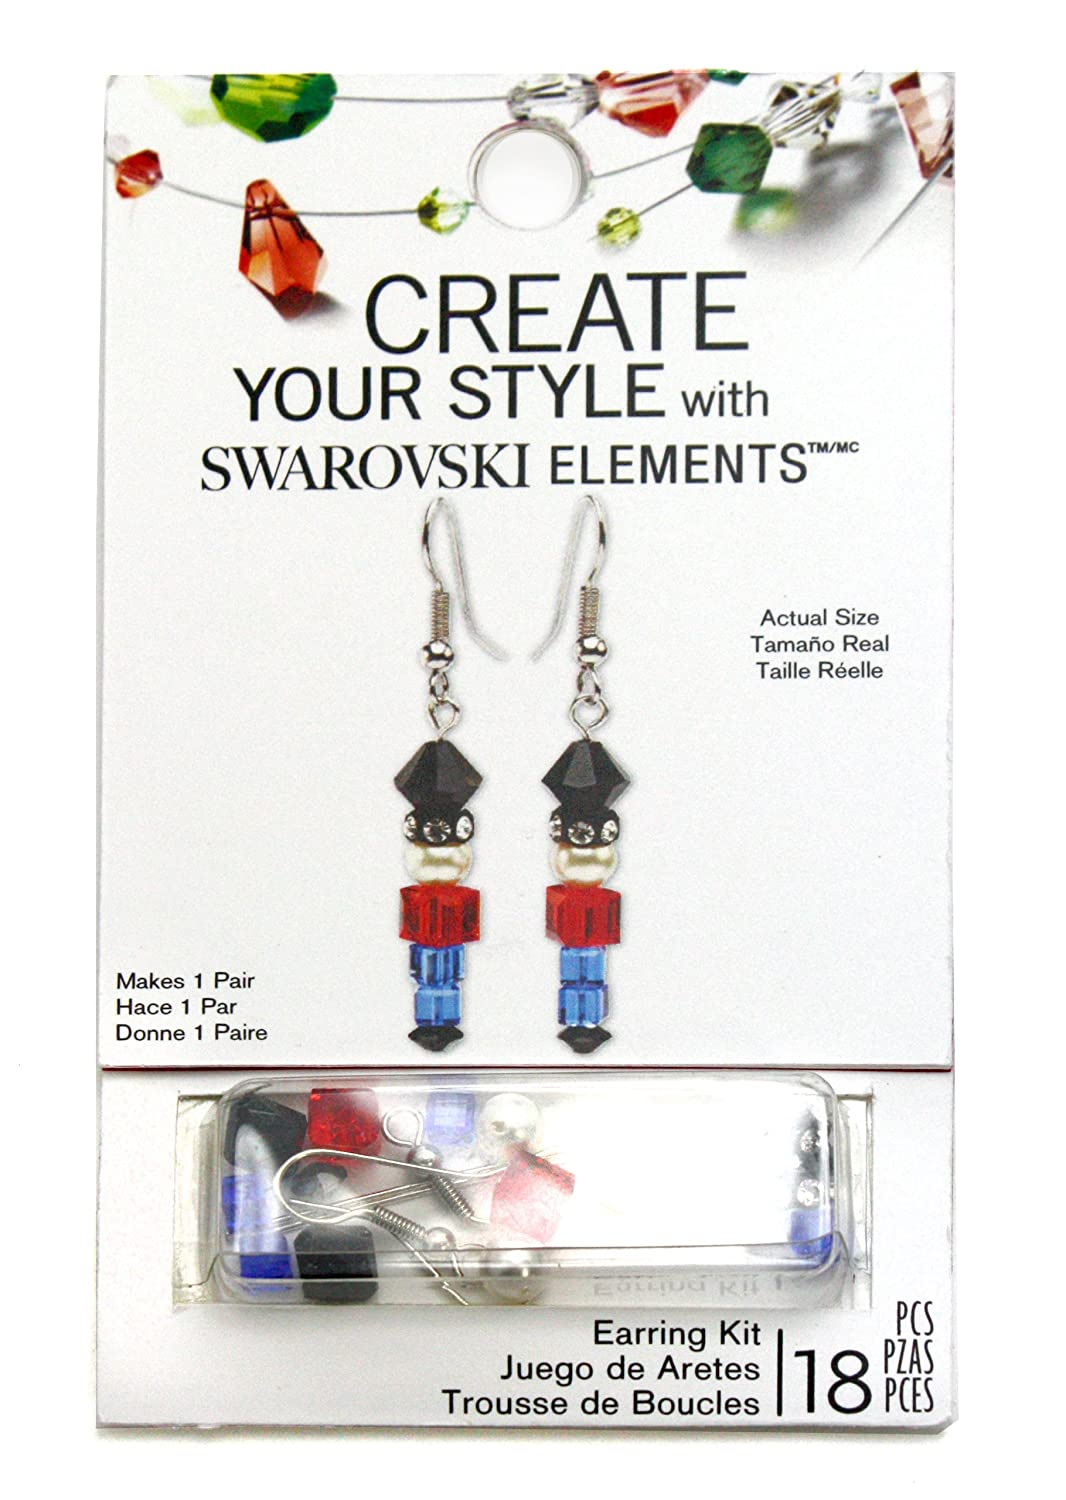 bd11d9f66 Amazon.com: Swarovski Toy Soldier Earring Kit by Create Your Style, 18  Pieces